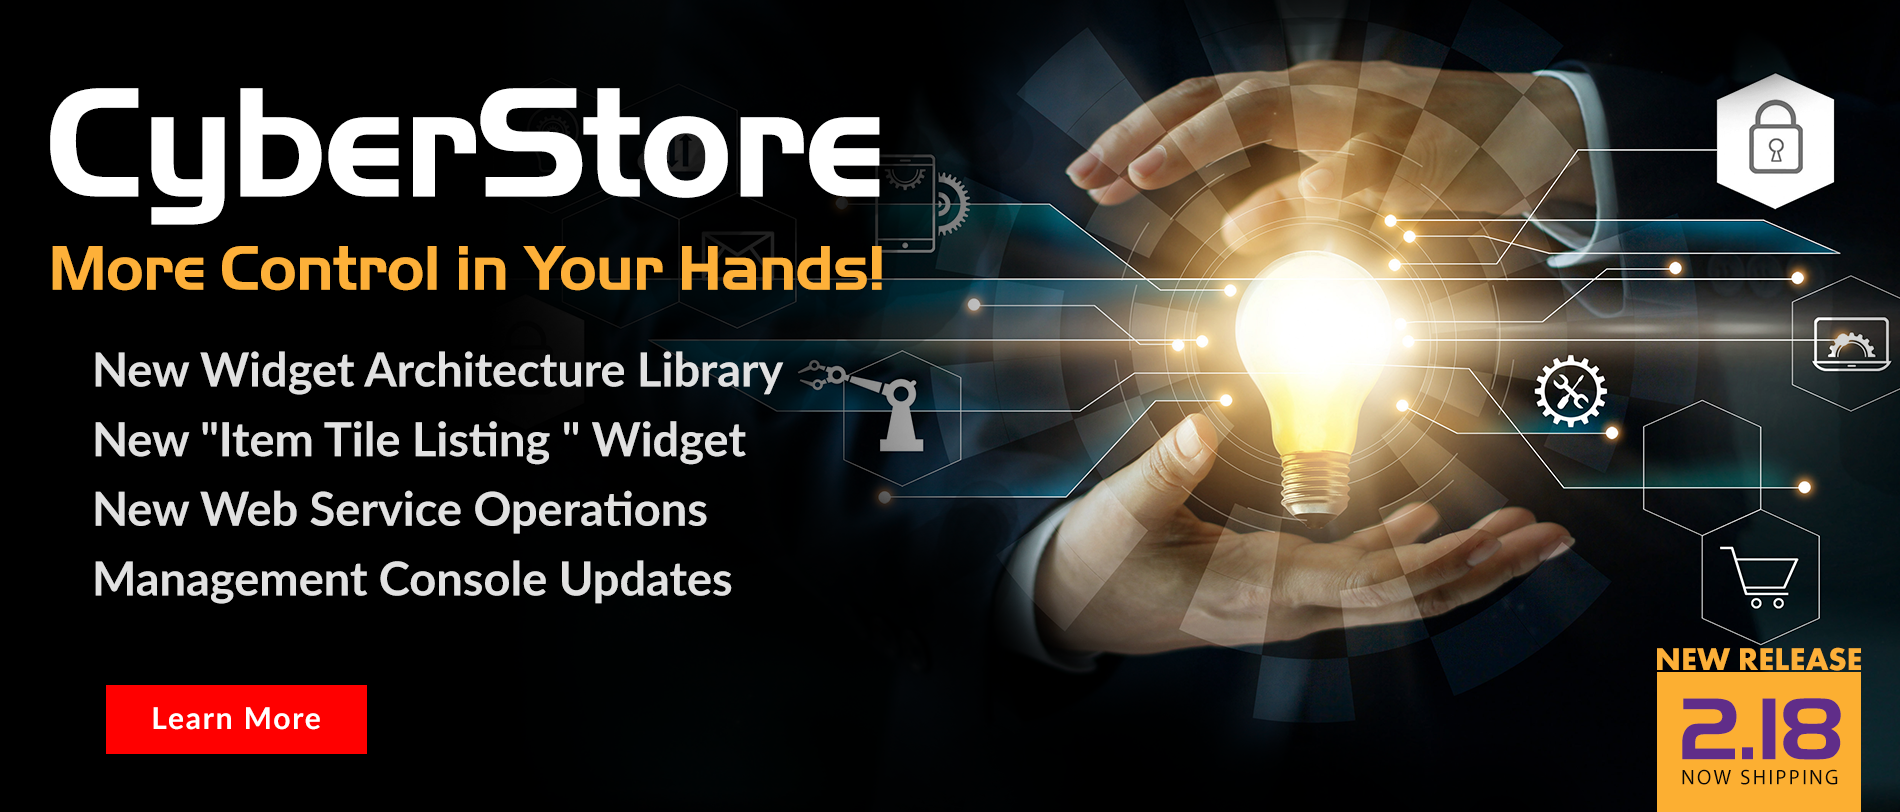 Feel the Power of CyberStore version 2.18  More Control In Your Hands